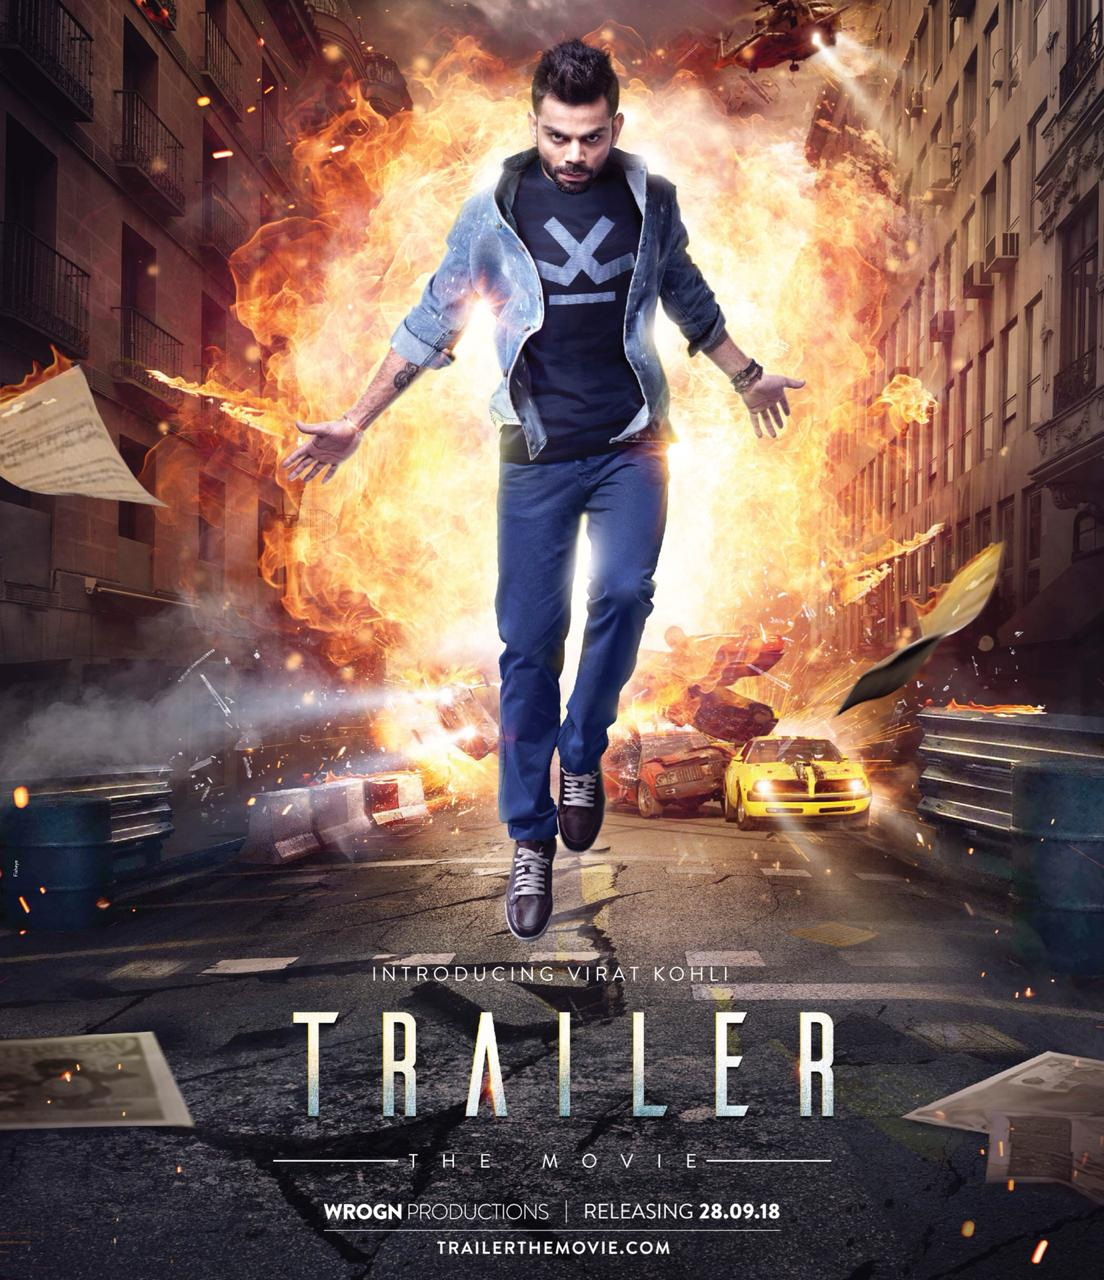 Another debut after 10 years, can't wait! �� #TrailerTheMovie https://t.co/zDgE4JrdDT https://t.co/hvcovMtfAV